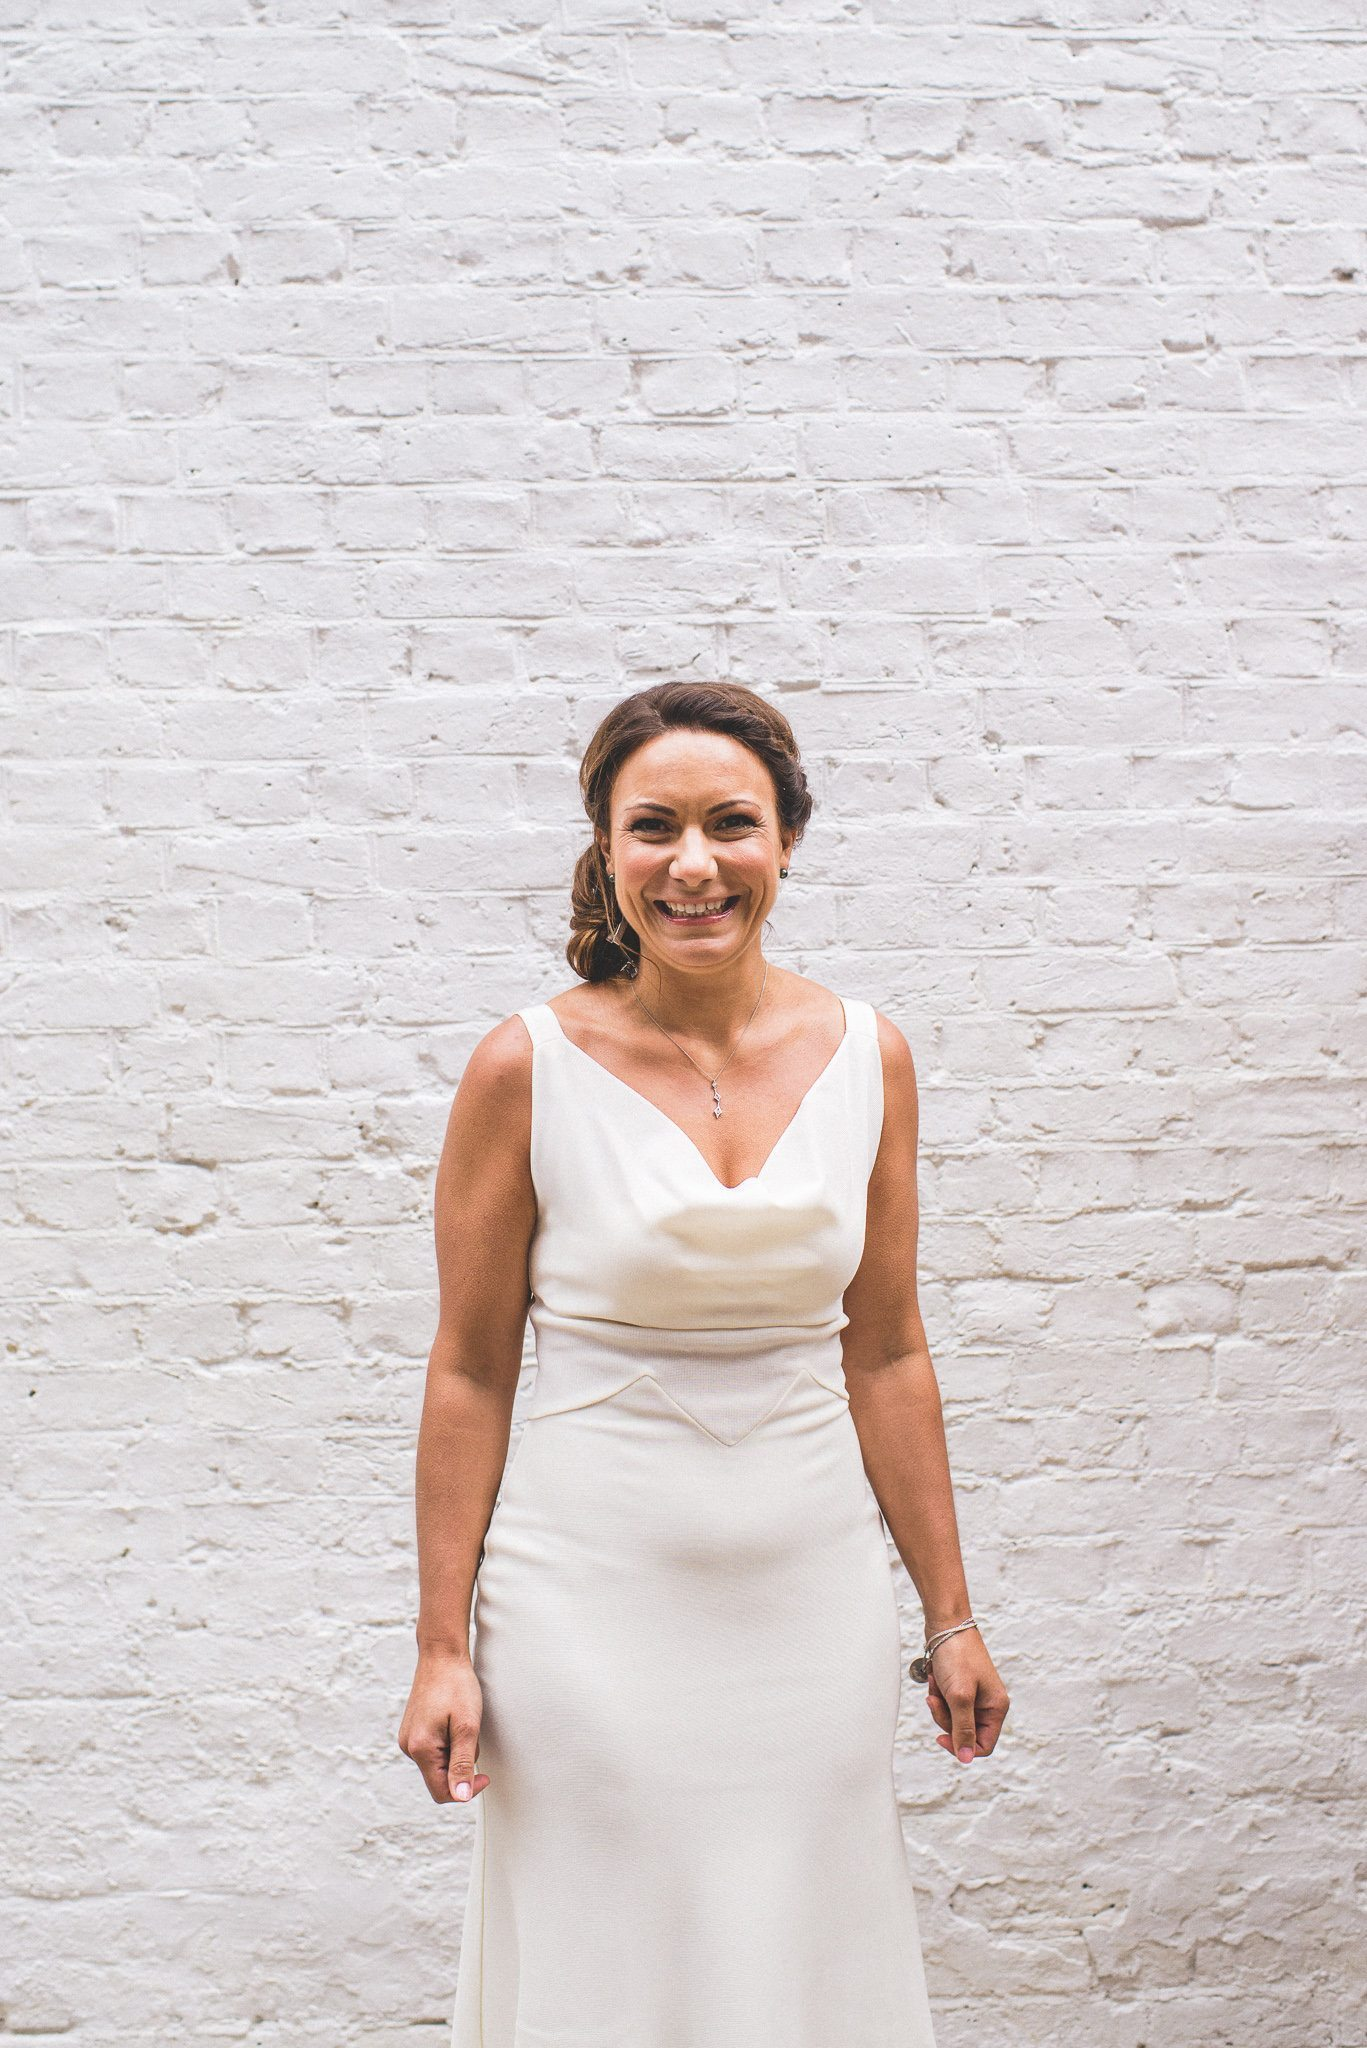 Ilaria shows off her finished bridal look in a simple Dior gown, pendant and loose up-do as she stands in front of a white brick wall